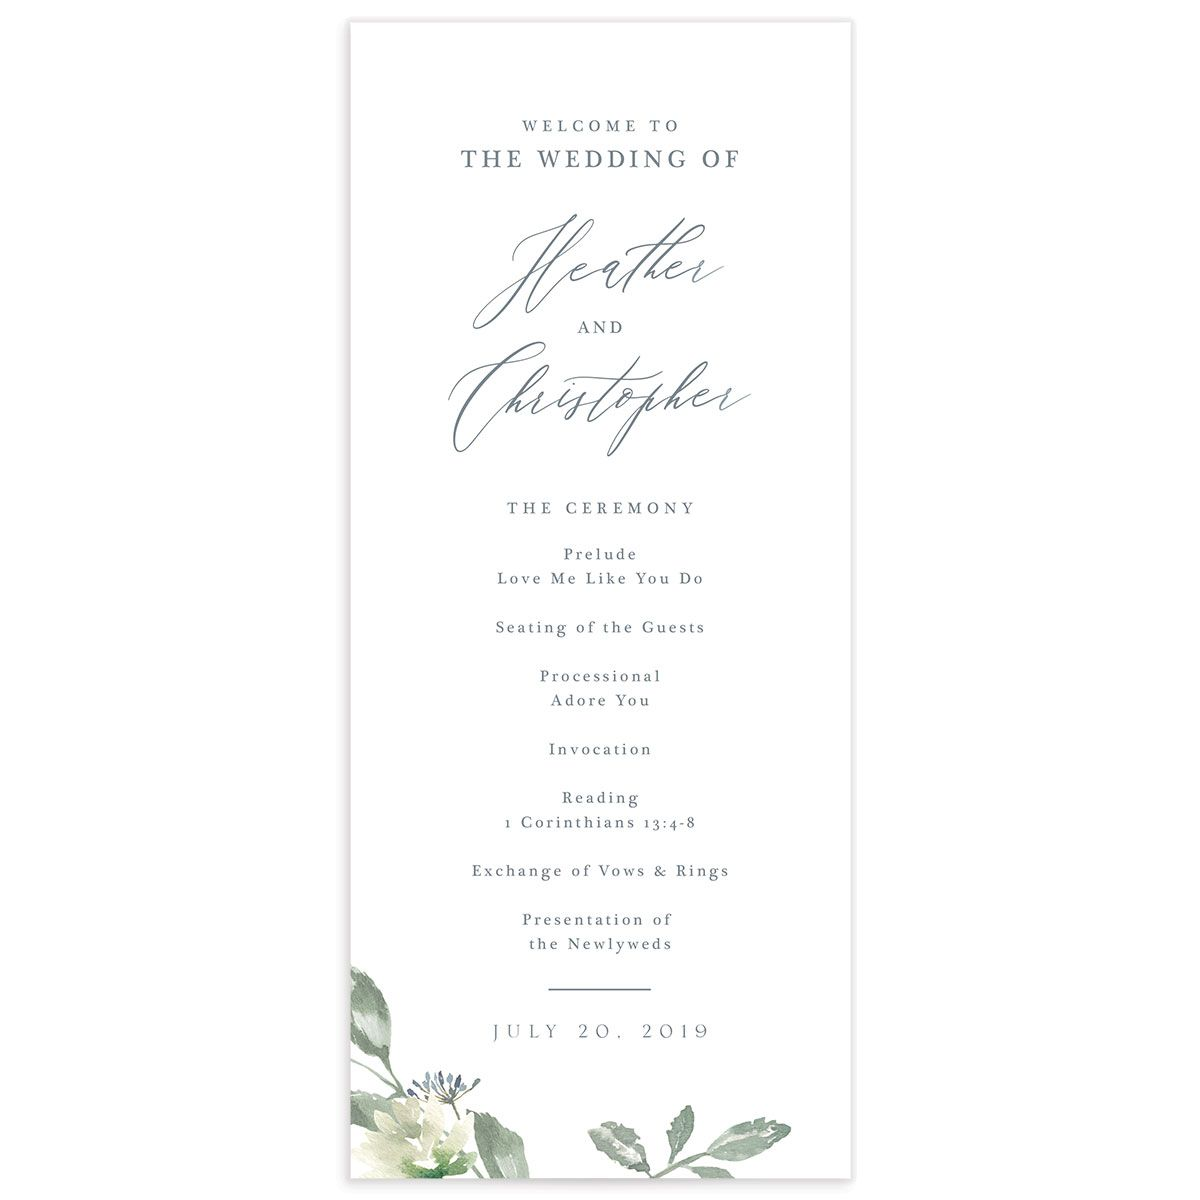 Dusted Calligraphy wedding programs in blue